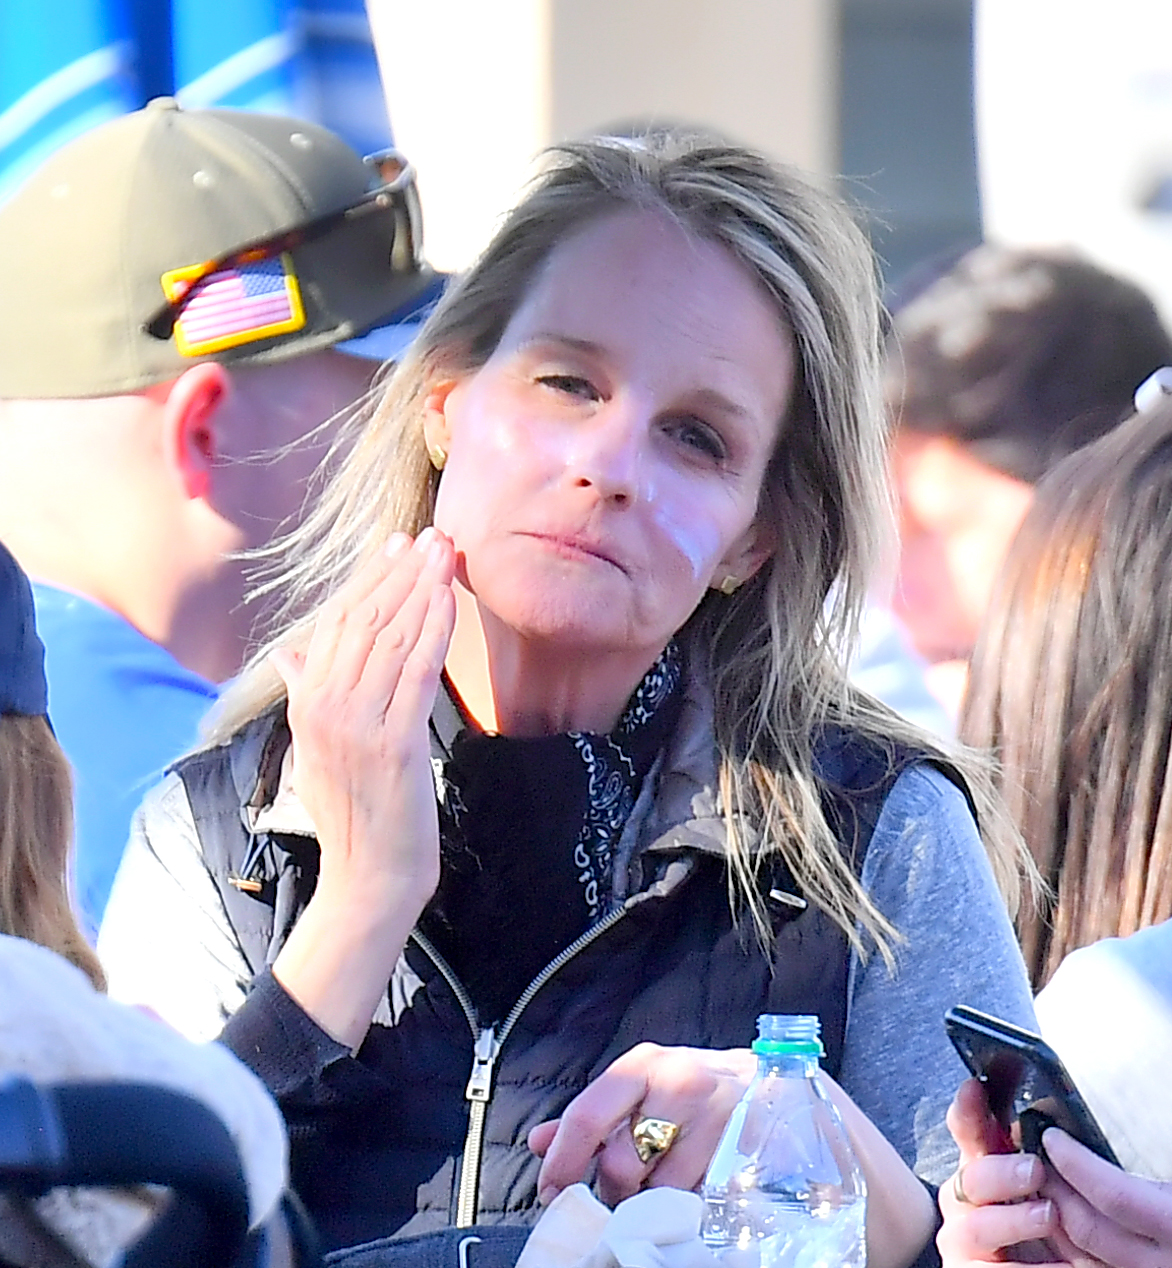 EXCLUSIVE: Helen Hunt spends times with her daughter and friends having a blast at Disney's California Adventure. The actress was seen having a blast and putting her hands in the air on the Radiator Springs ride in Carsland. She was also seen reapplying sunscreen on her face before enjoying lunch outdoors. 15 Mar 2019, Image: 419866802, License: Rights-managed, Restrictions: World Rights, Model Release: no, Credit line: Marksman / MEGA / Mega Agency / Profimedia